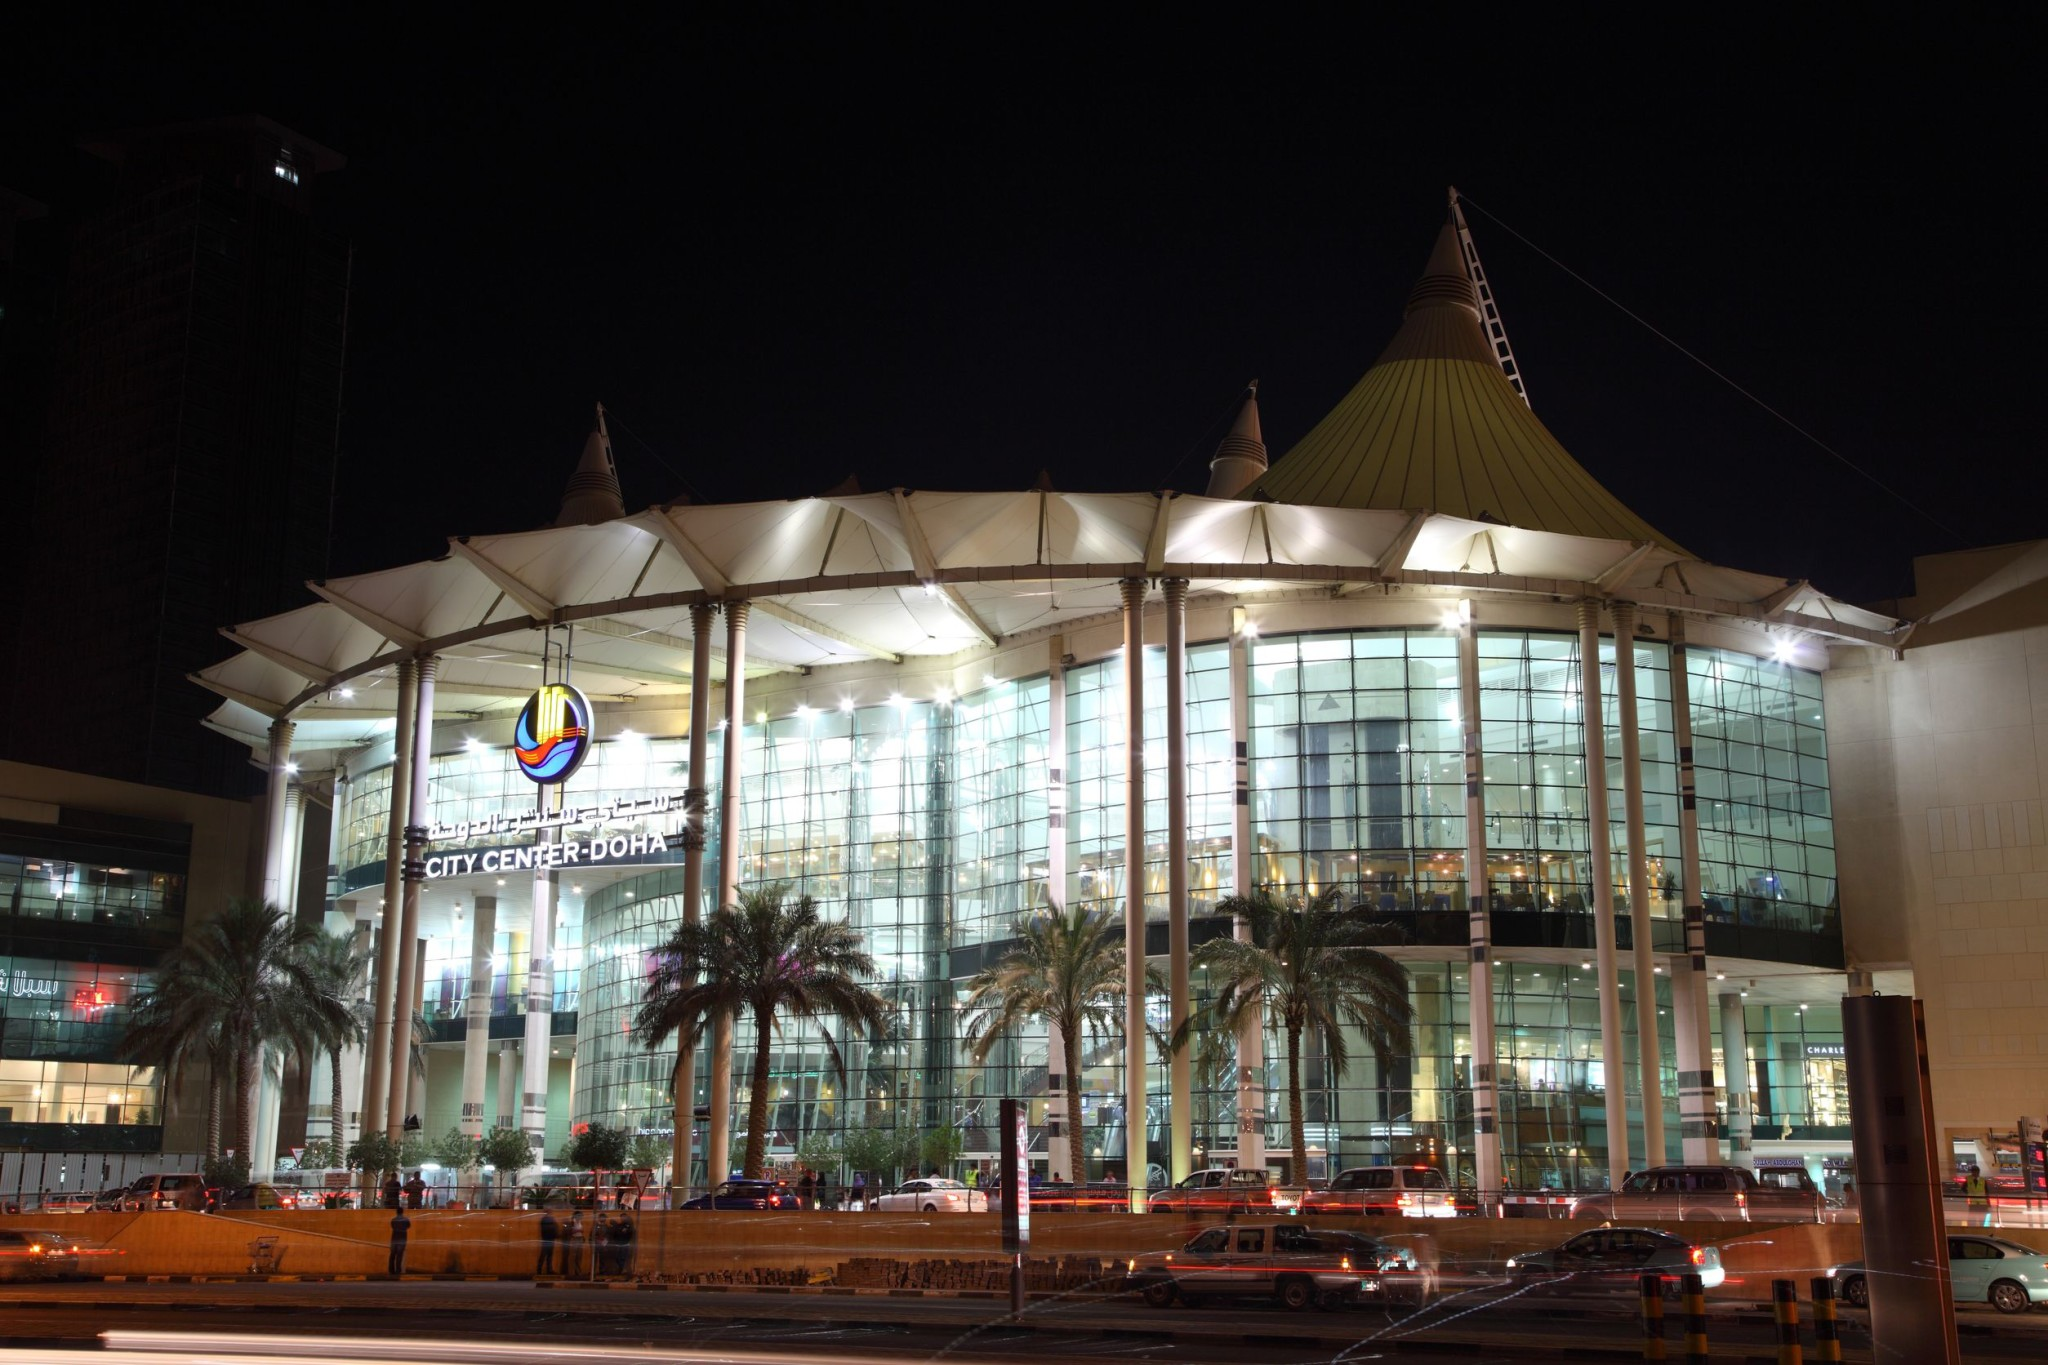 City Center Mall downtown in Doha, Qatar